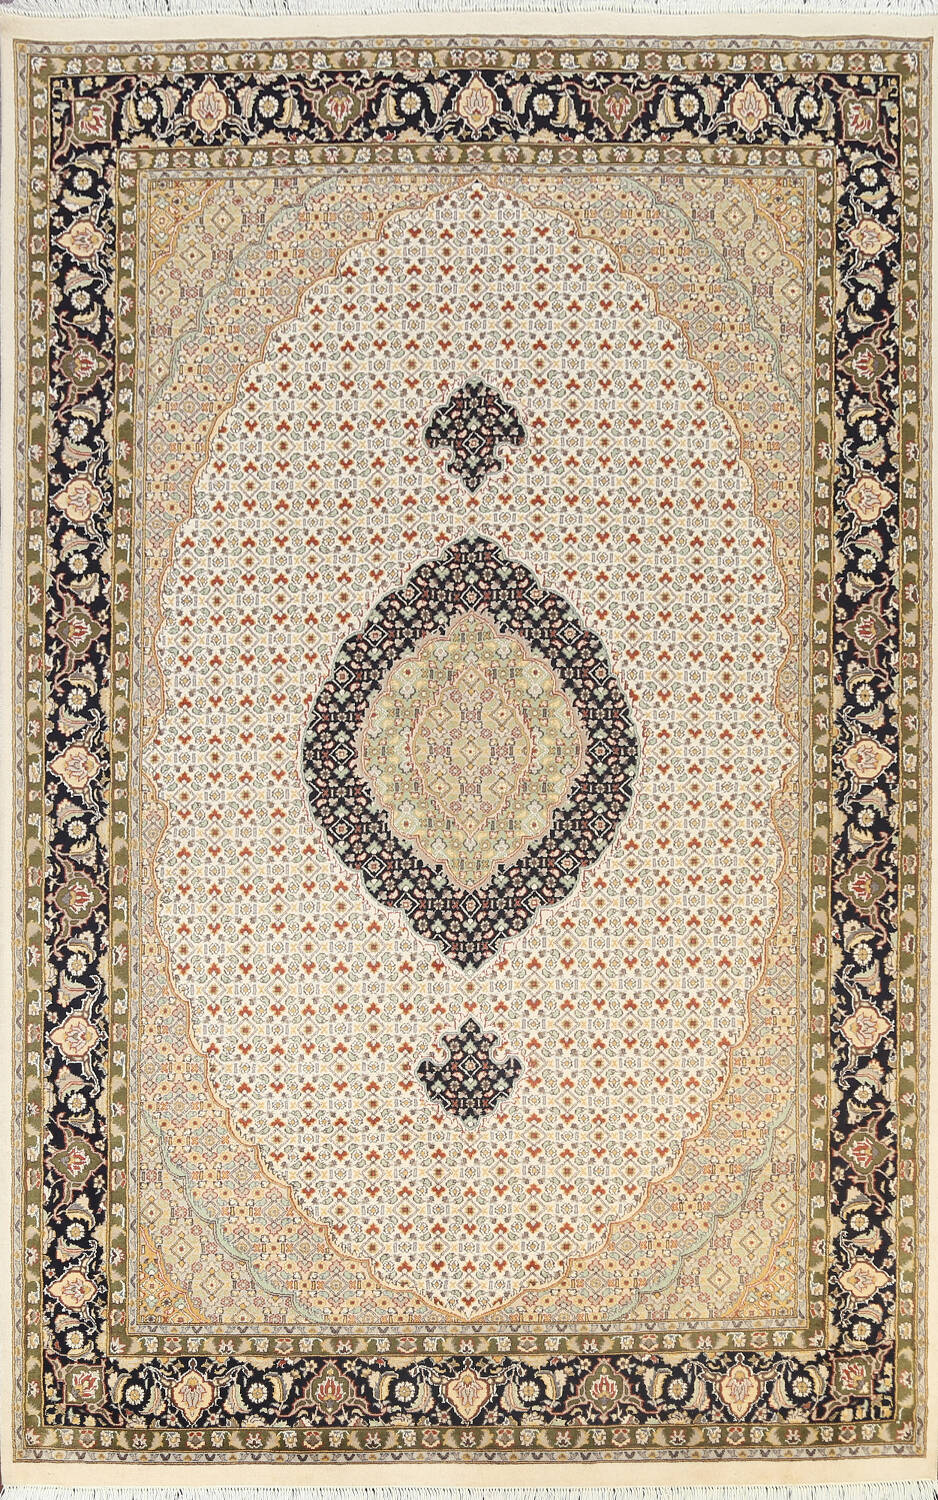 100% Vegetable Dye Tabriz Mahi Oriental Area Rug 6x9 image 1